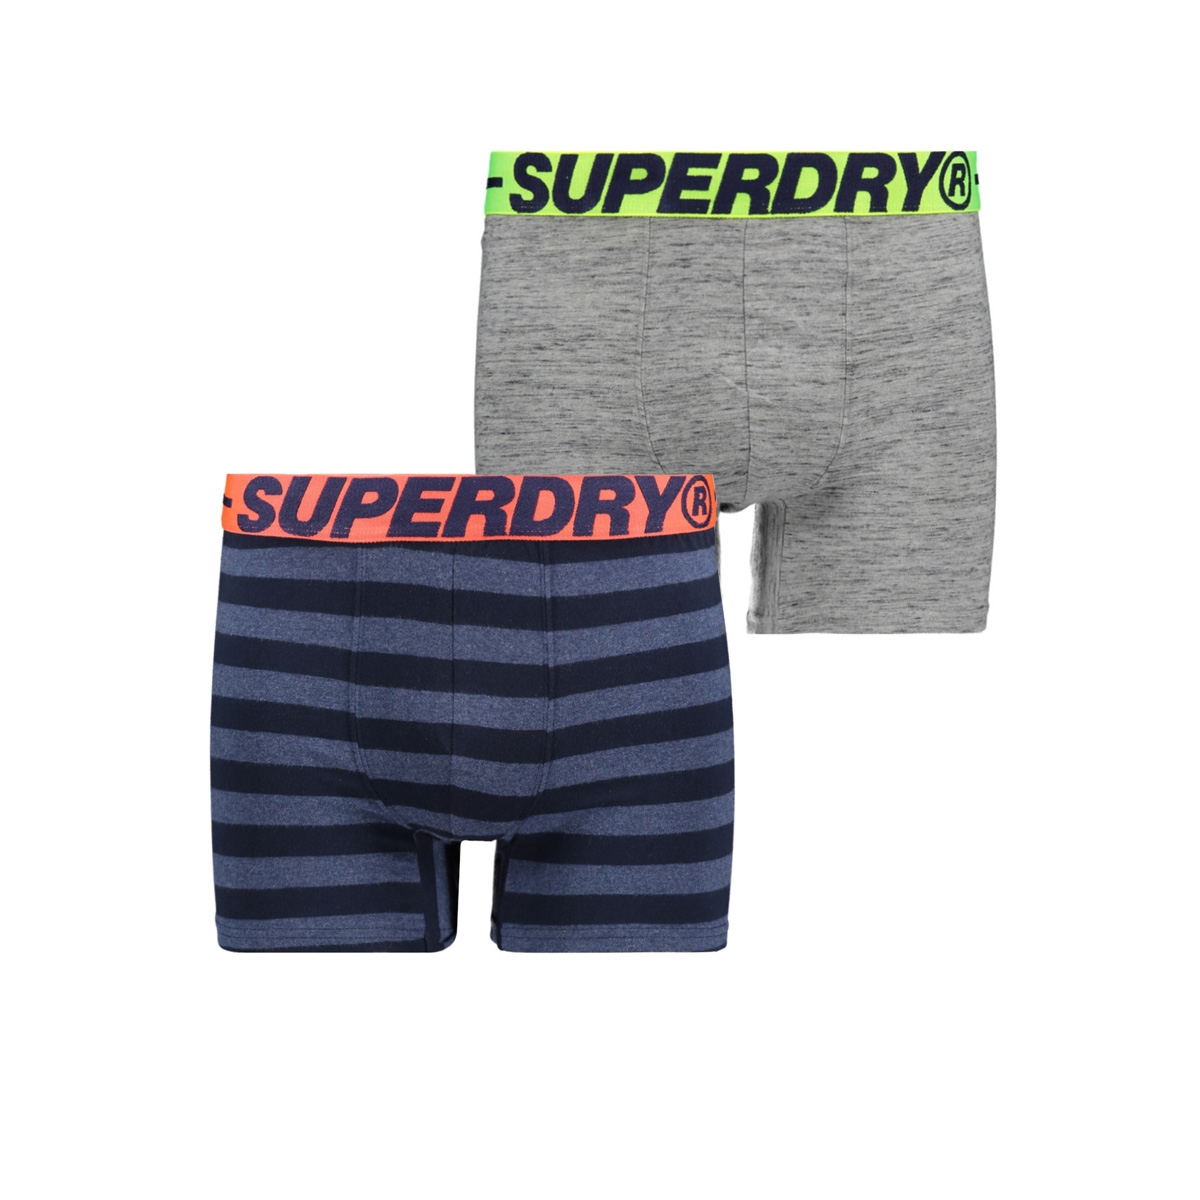 boxer dubble pack m3110001a superdry ondergoed grey grit